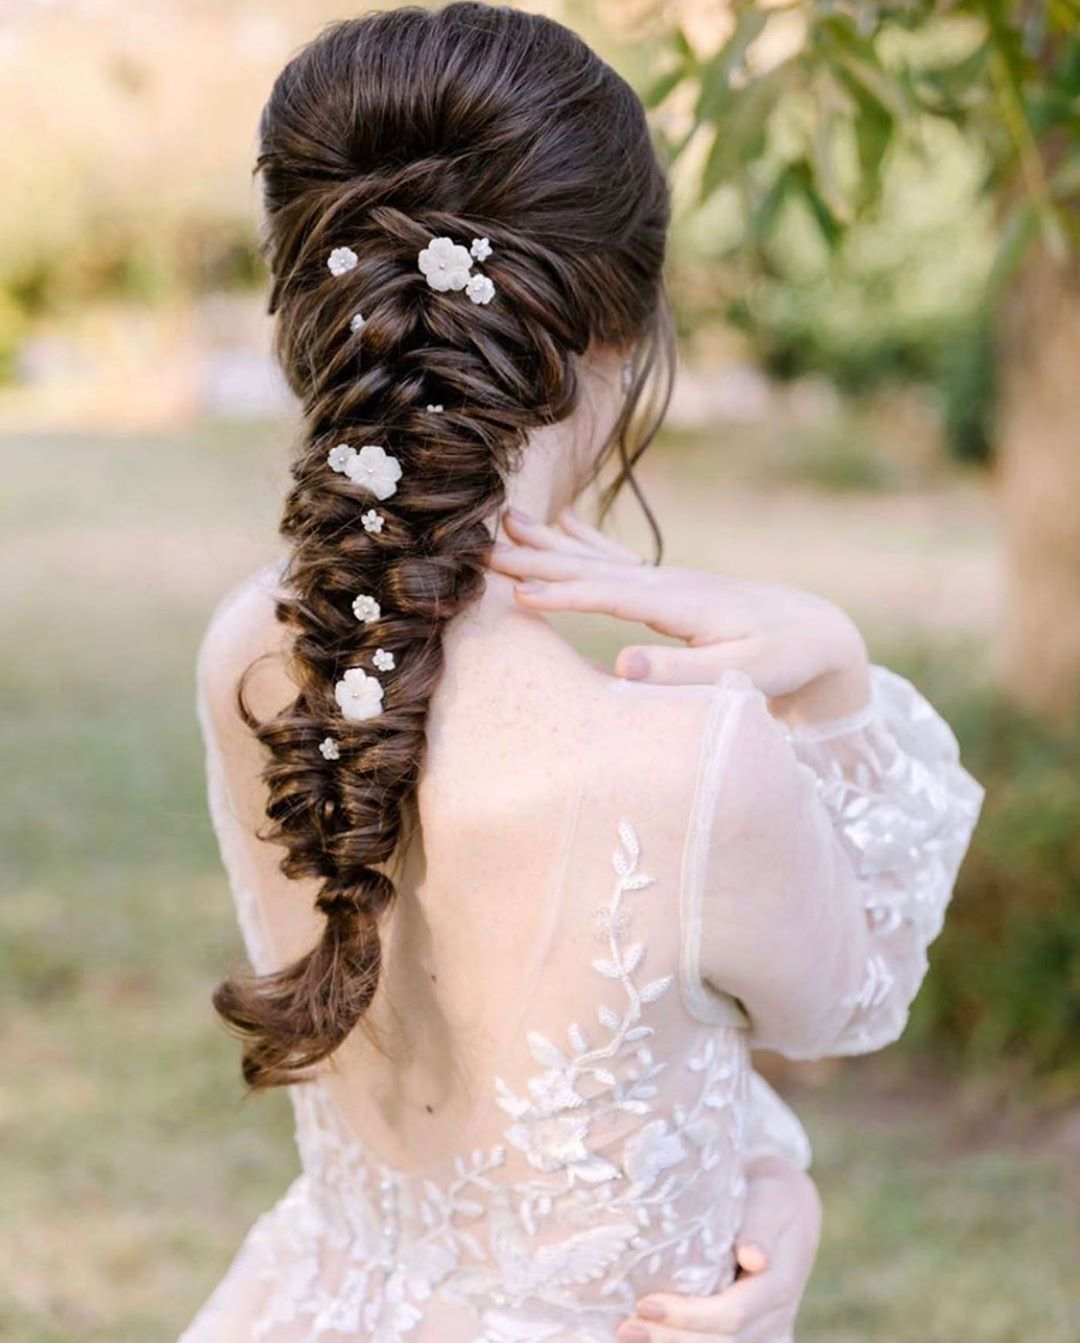 dainty flower adorned braid with a delicate boho touch